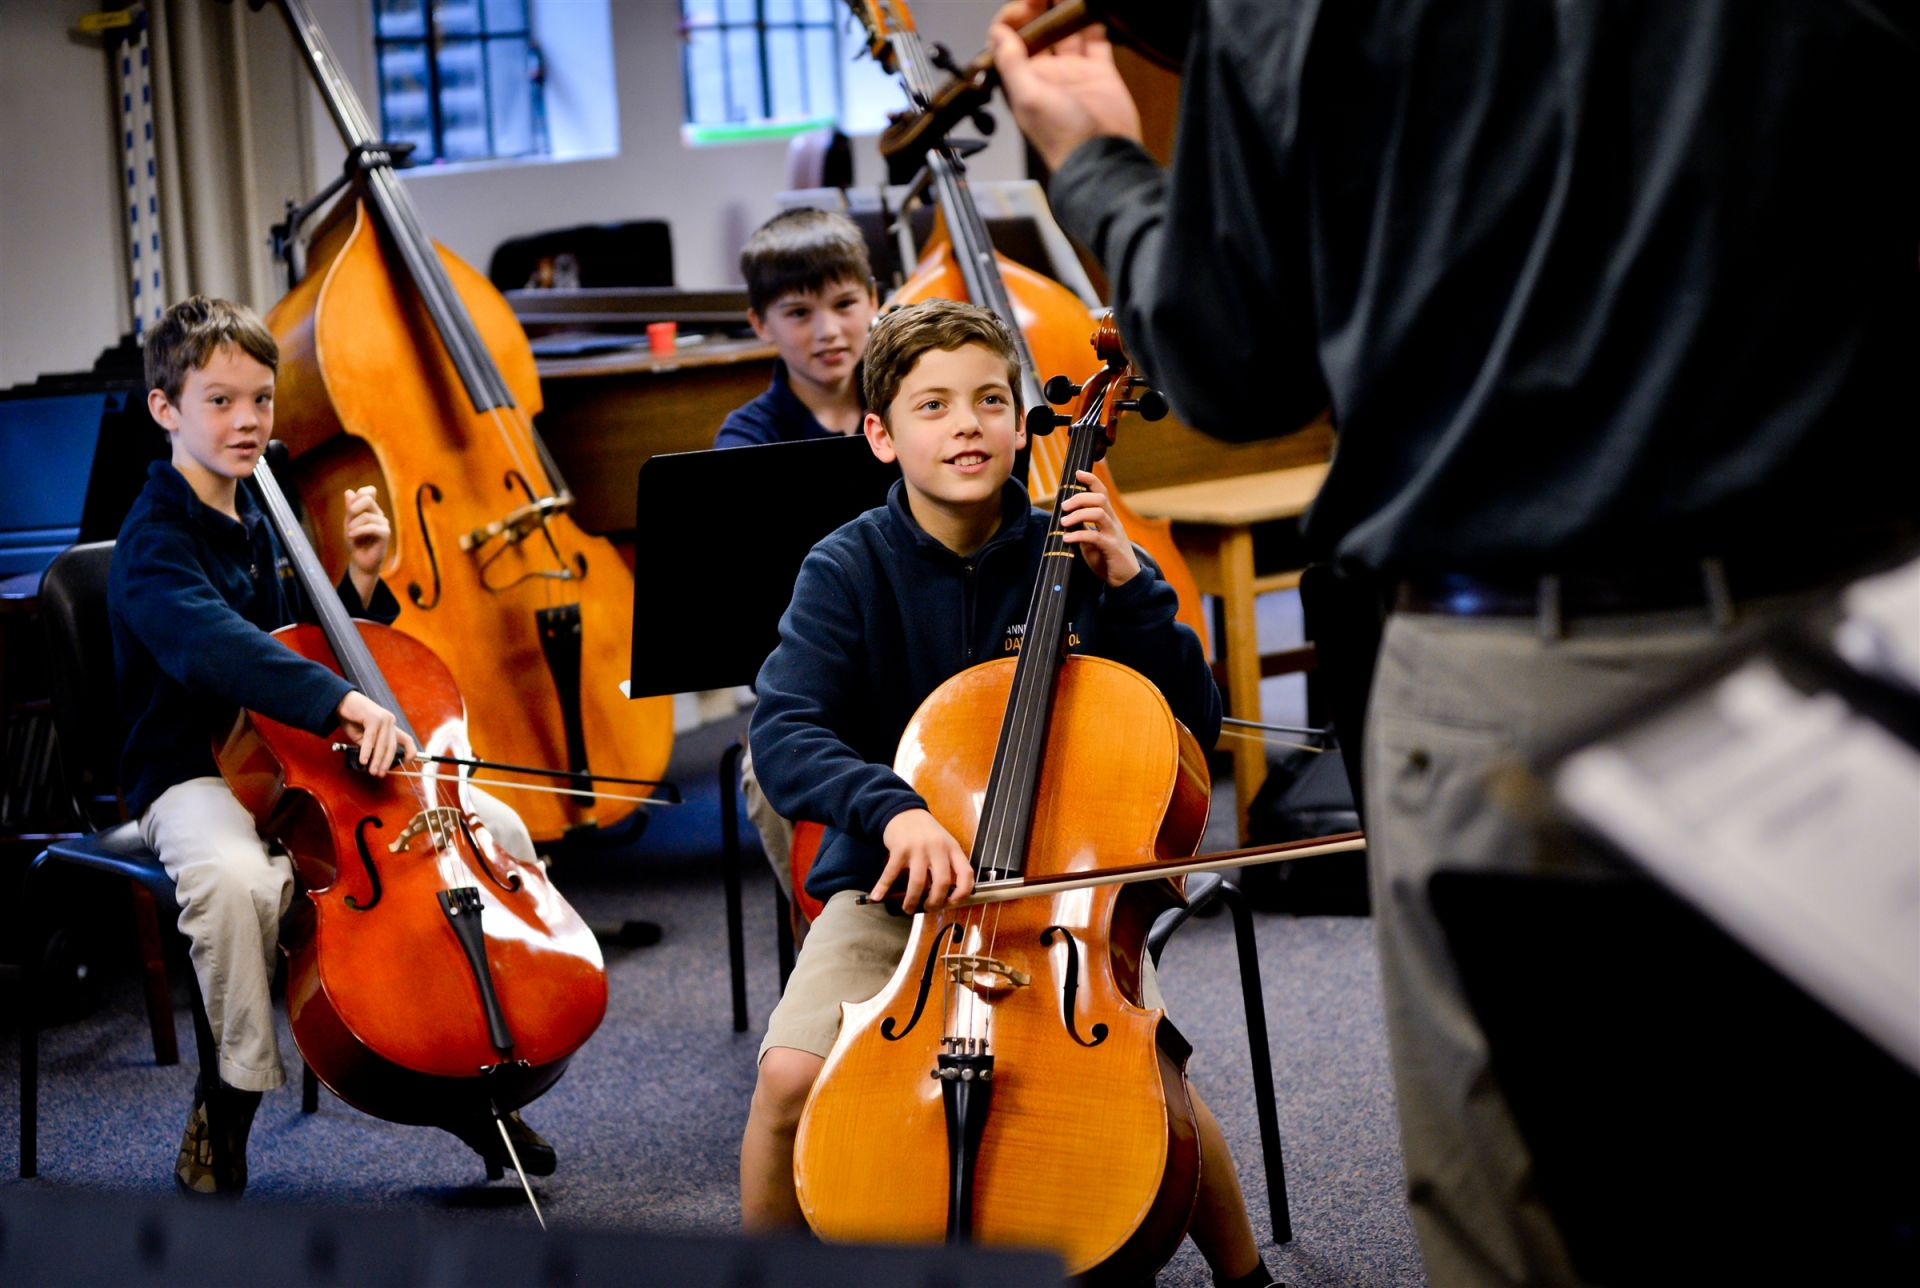 Music practice rooms provide ample space for group and individual lessons.